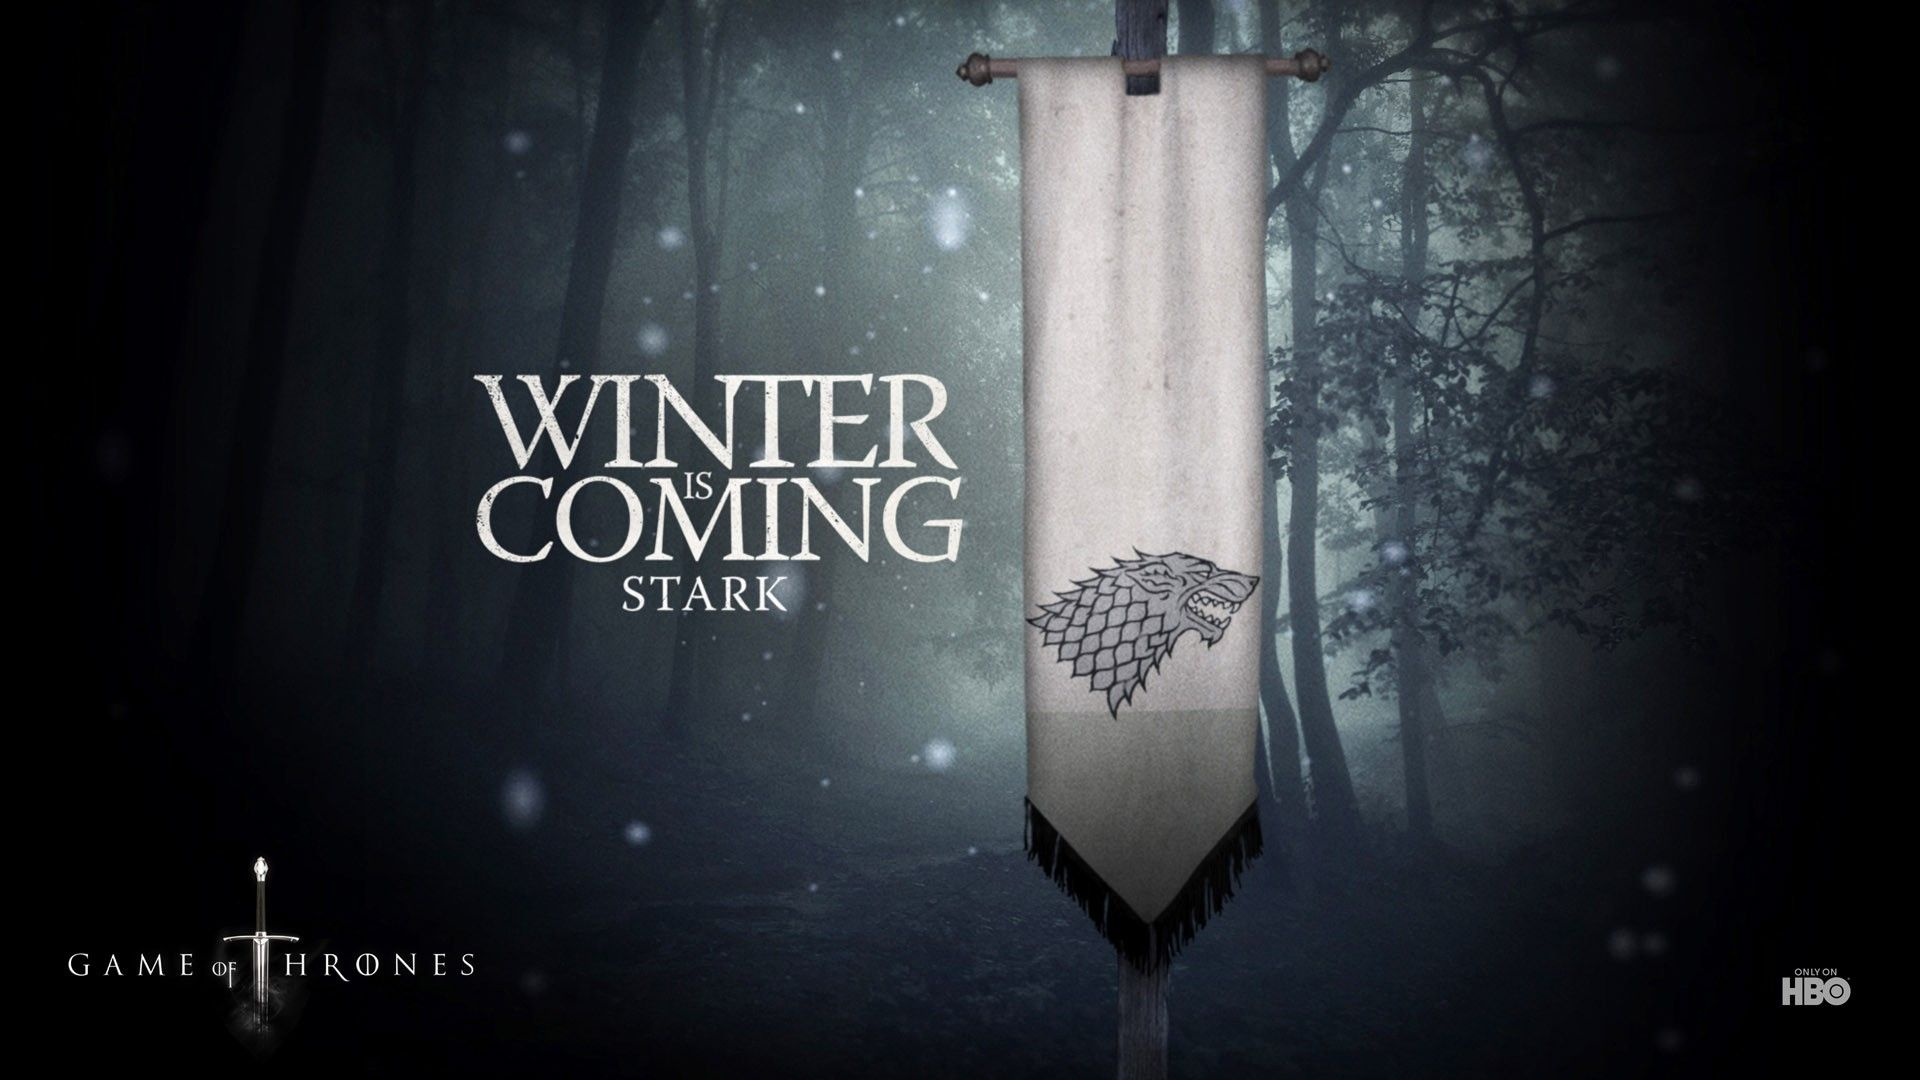 Game of Thrones wallpaper HD free download Canvas print